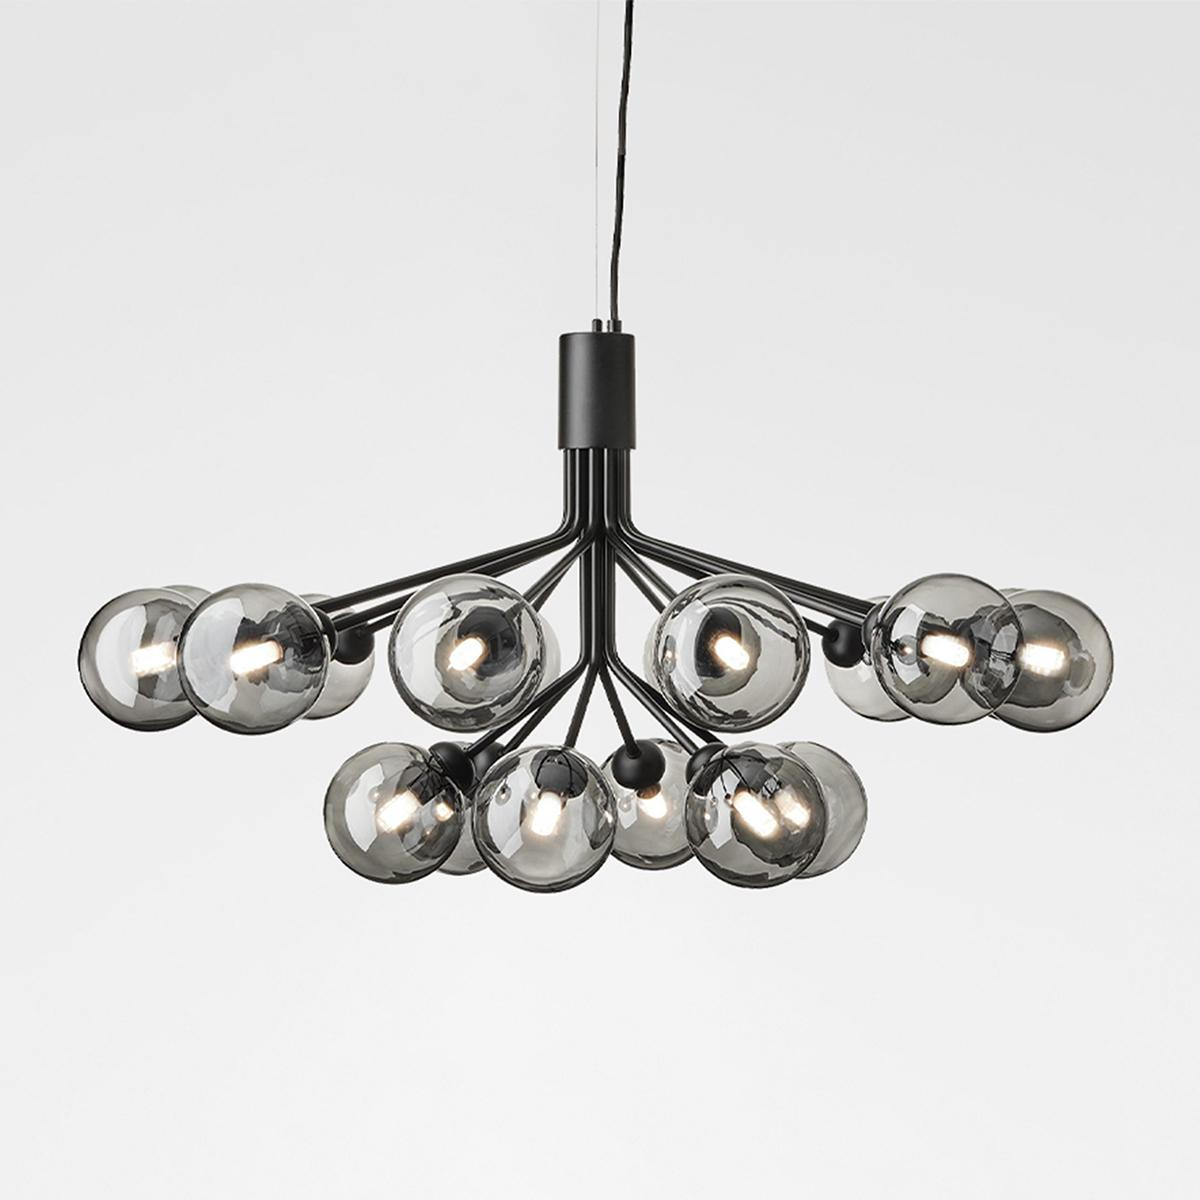 nuura-apiales-18-chandelier-satin-black-smoked-glass-1200